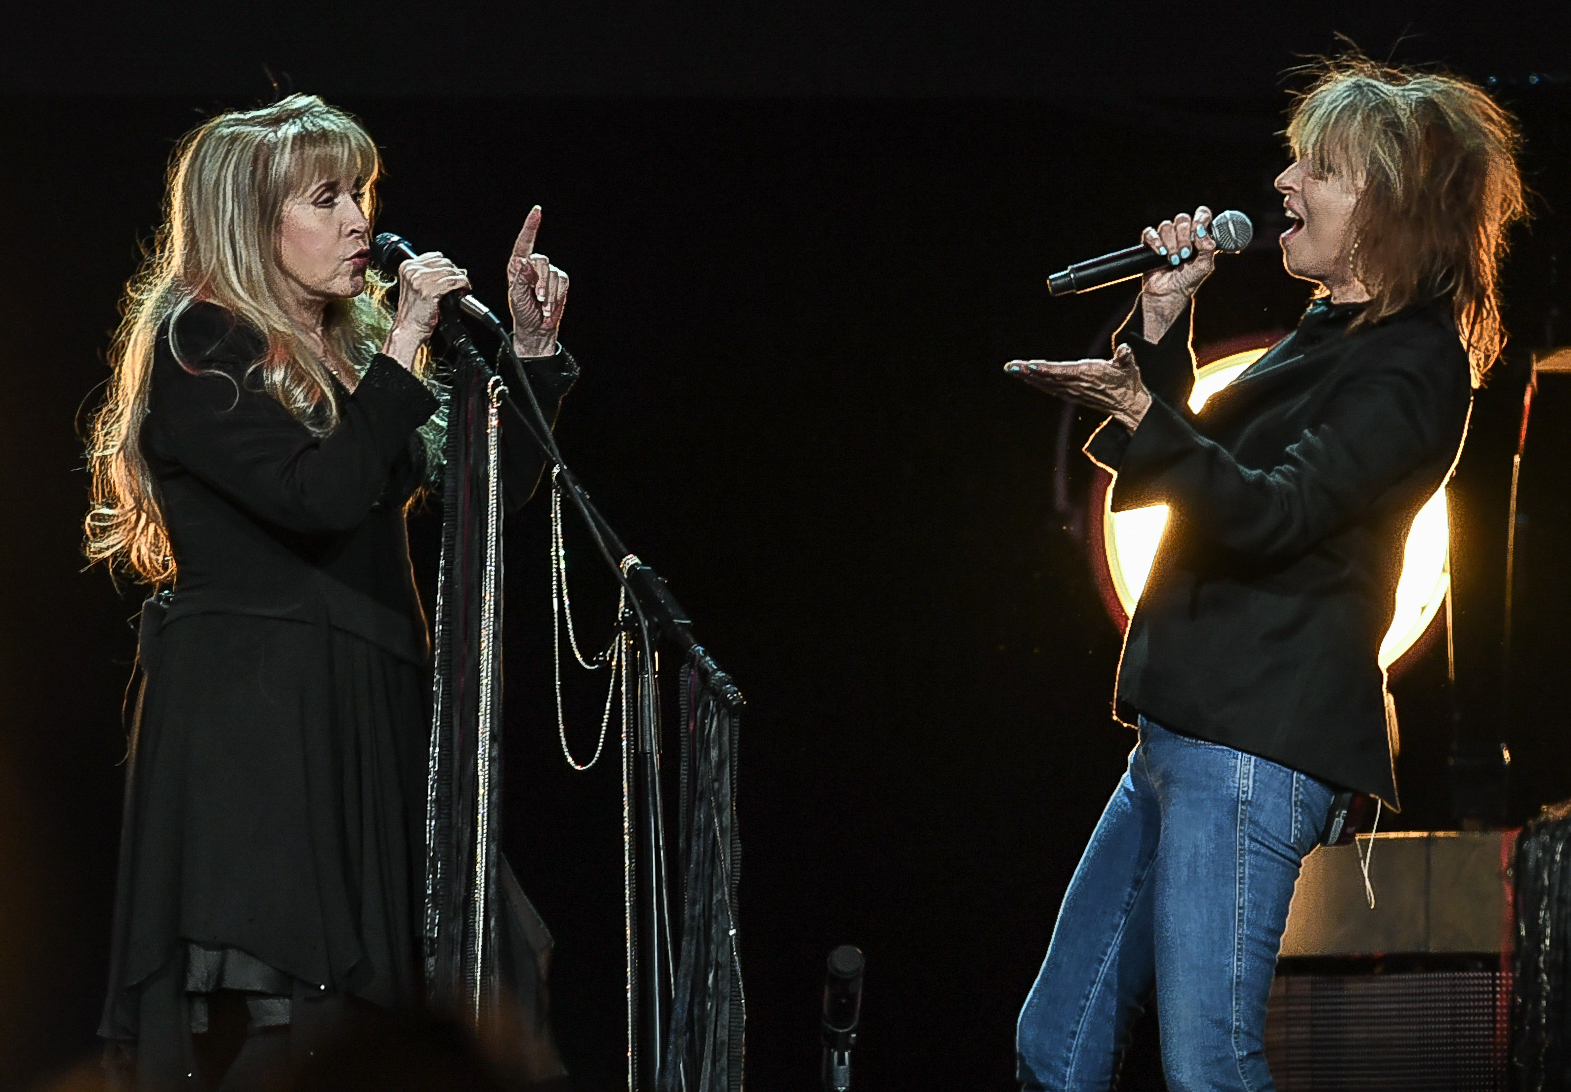 """Chrissie Hynde of the Pretenders (the night's opening act) took Tom Petty's vocal in """"Stop Draggin' My Heart Around."""""""